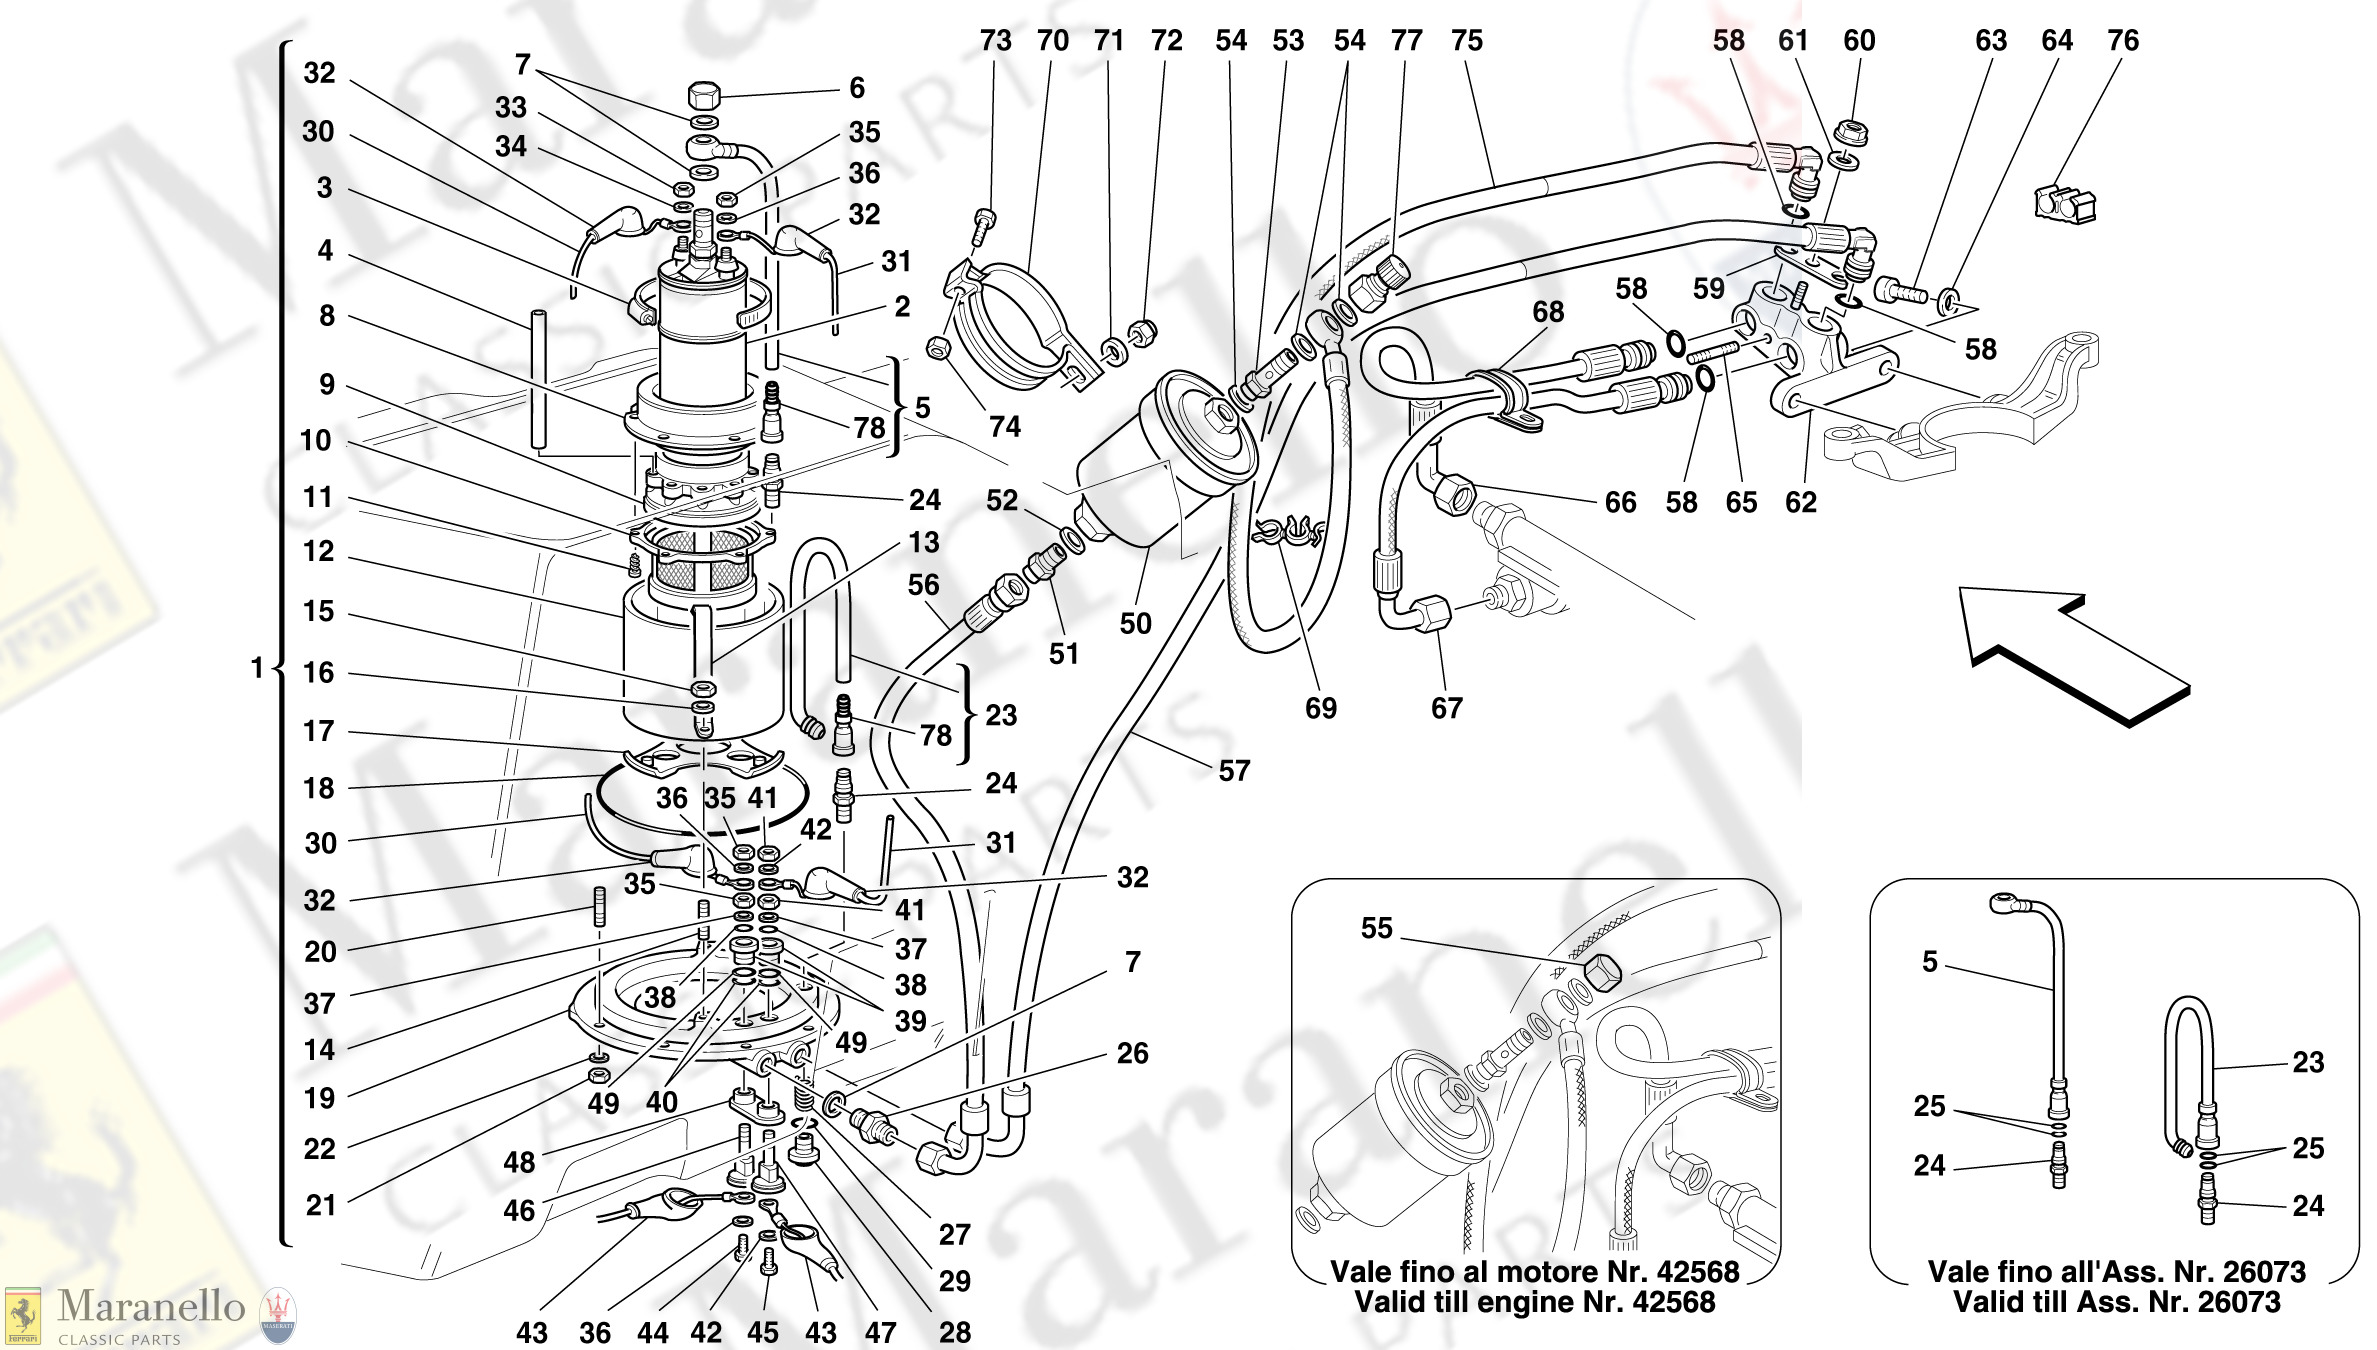 009 - Fuel Pump And Pipes